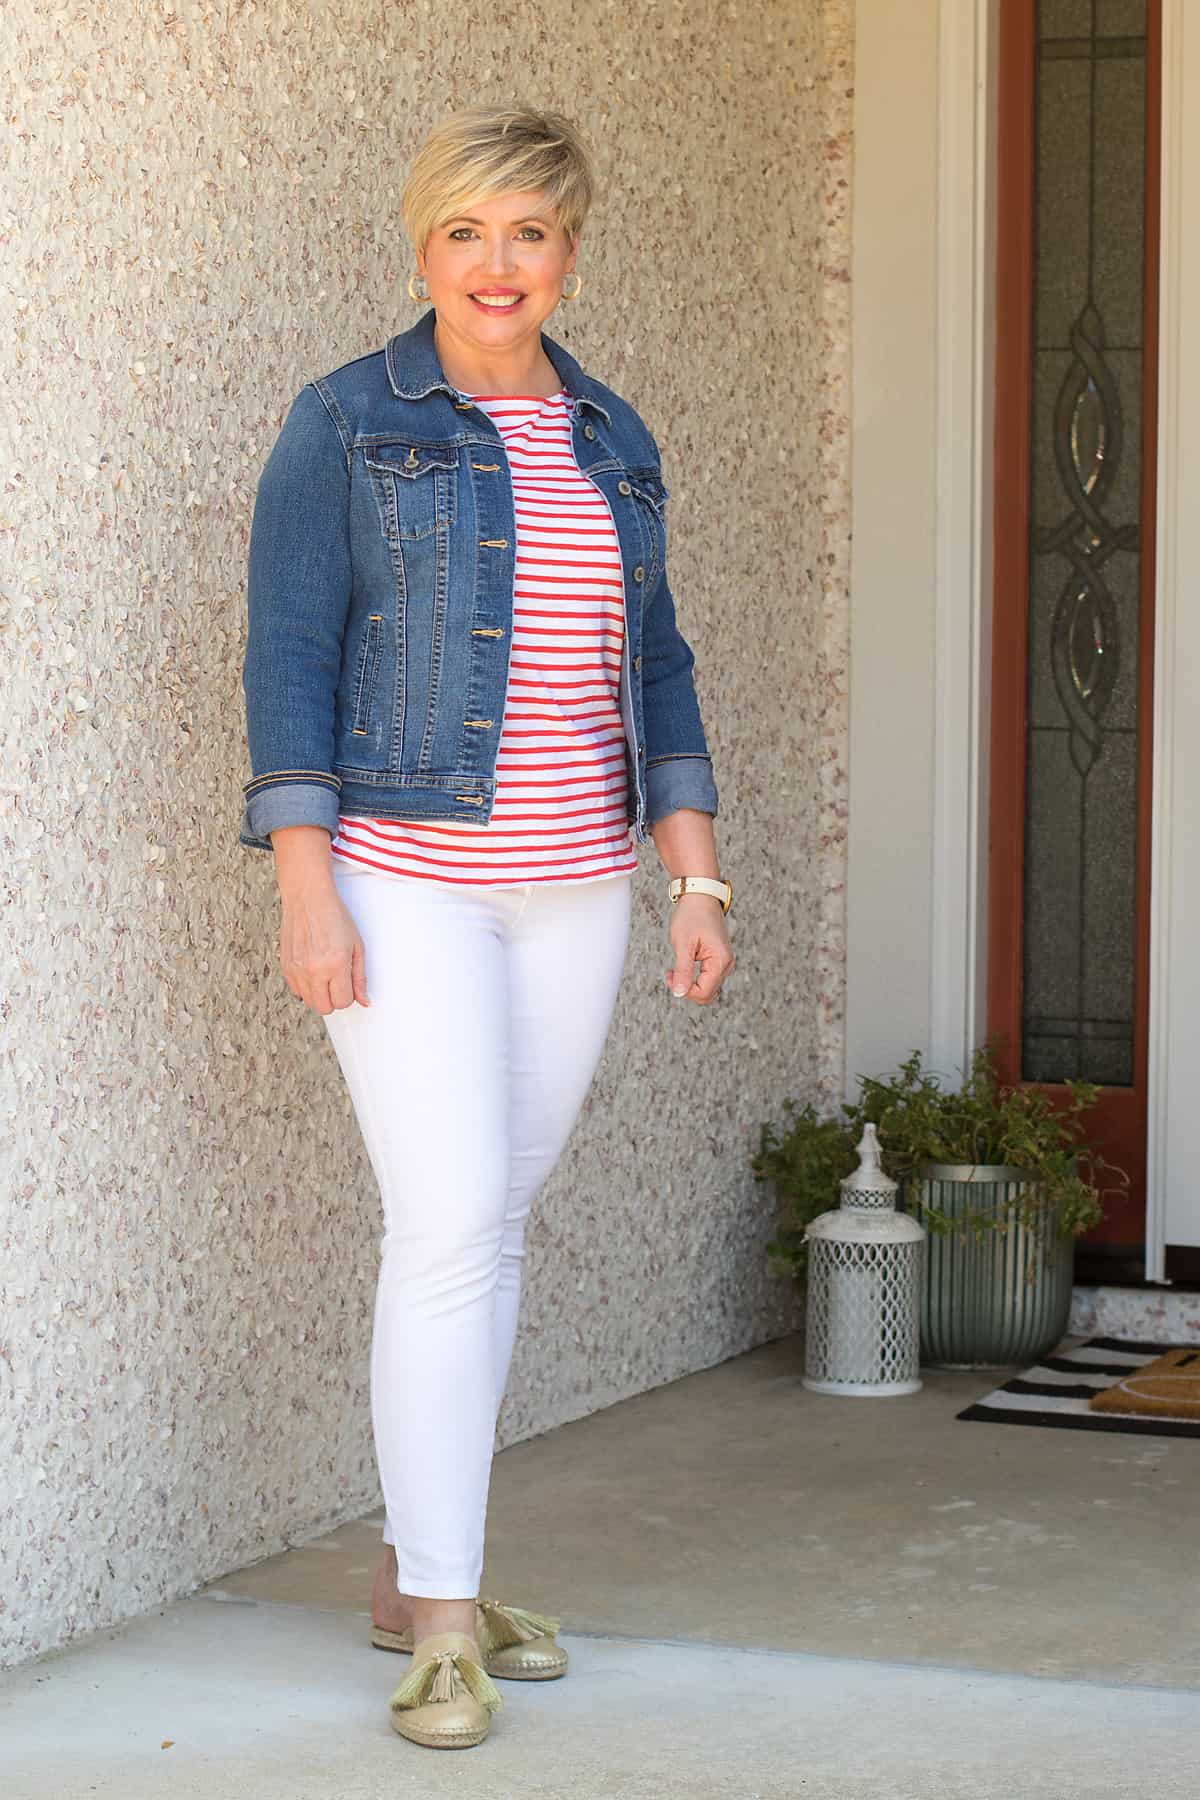 denim jacket outfit for women